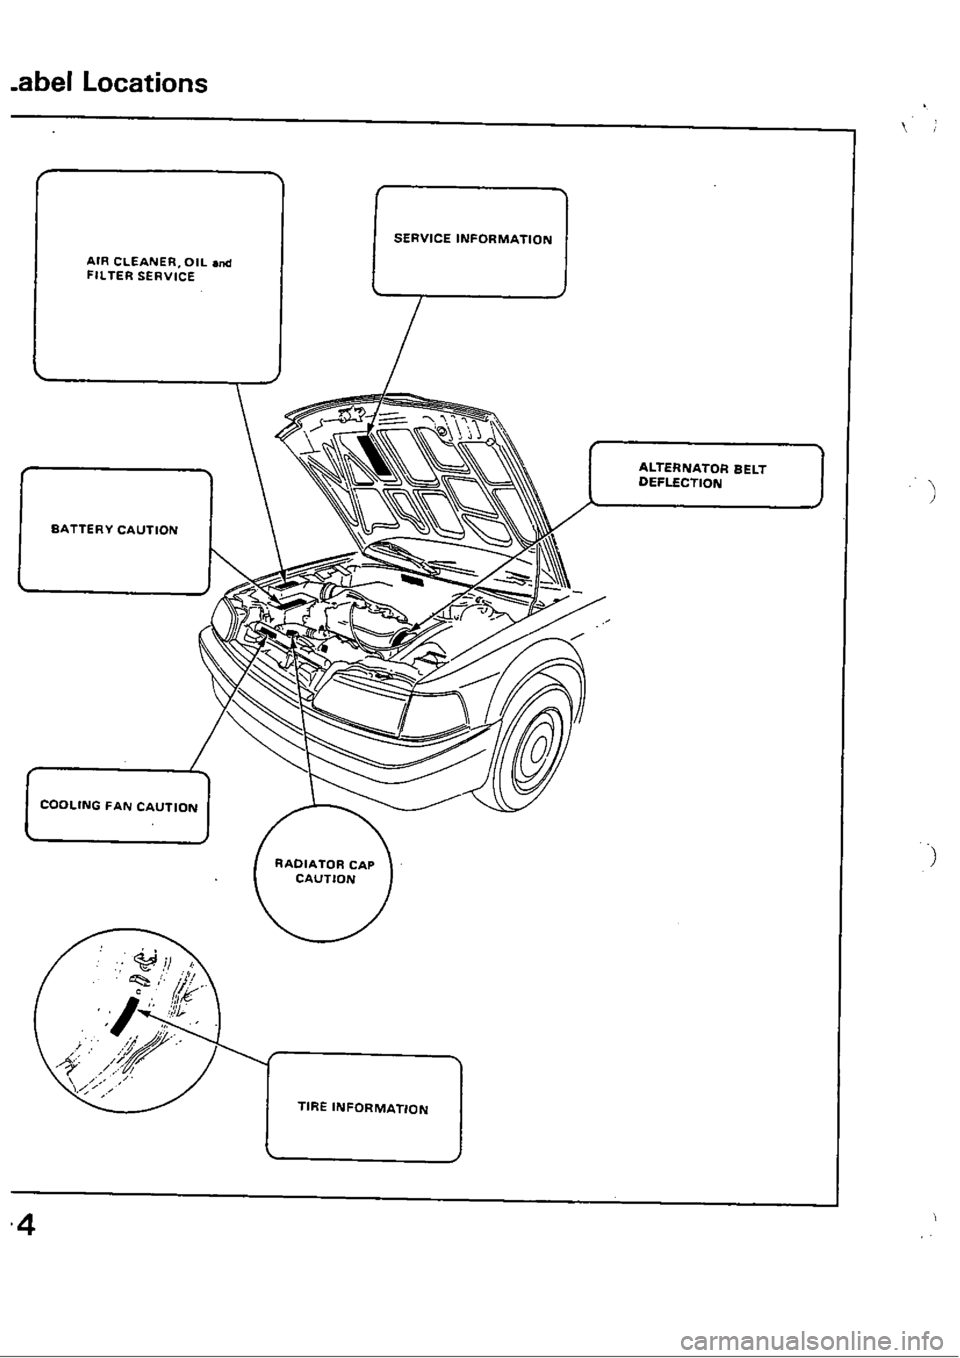 HONDA CIVIC 1988 4.G Workshop Manual